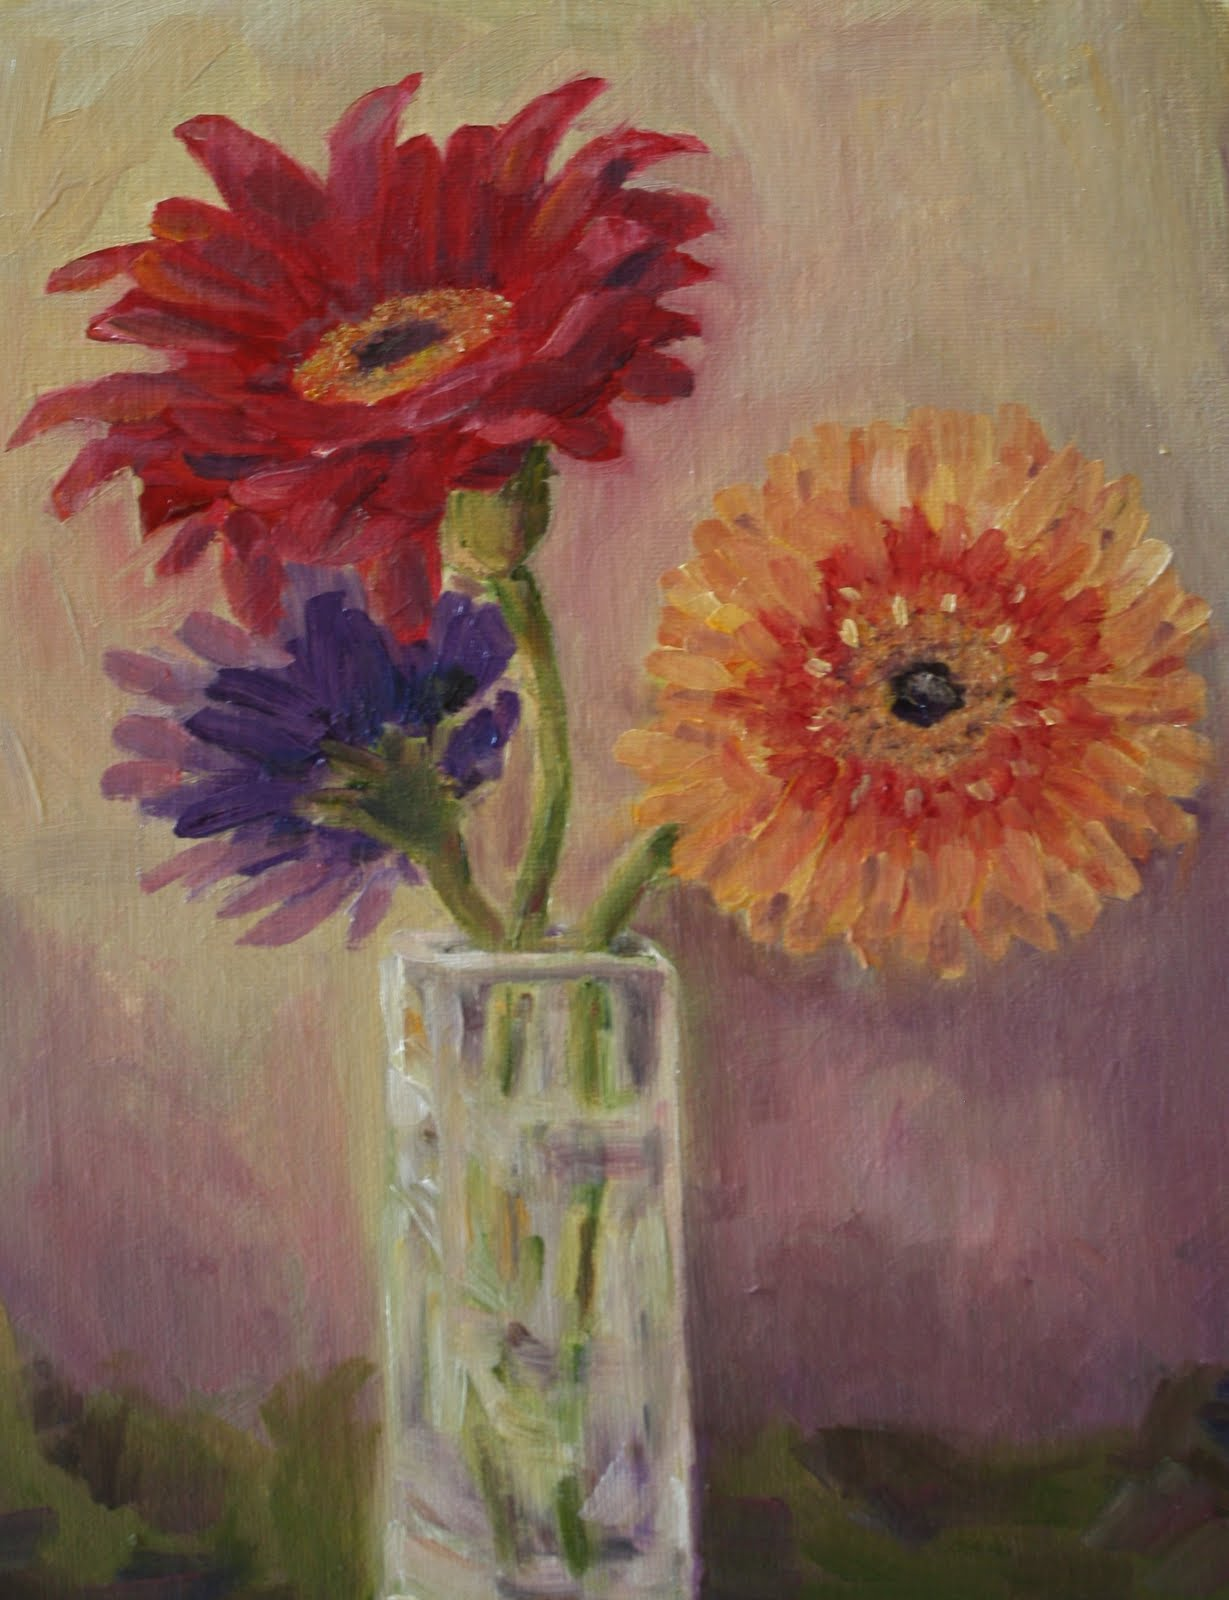 """""""Red Gerber Daisy and Friends"""" original fine art by Maggie Flatley"""